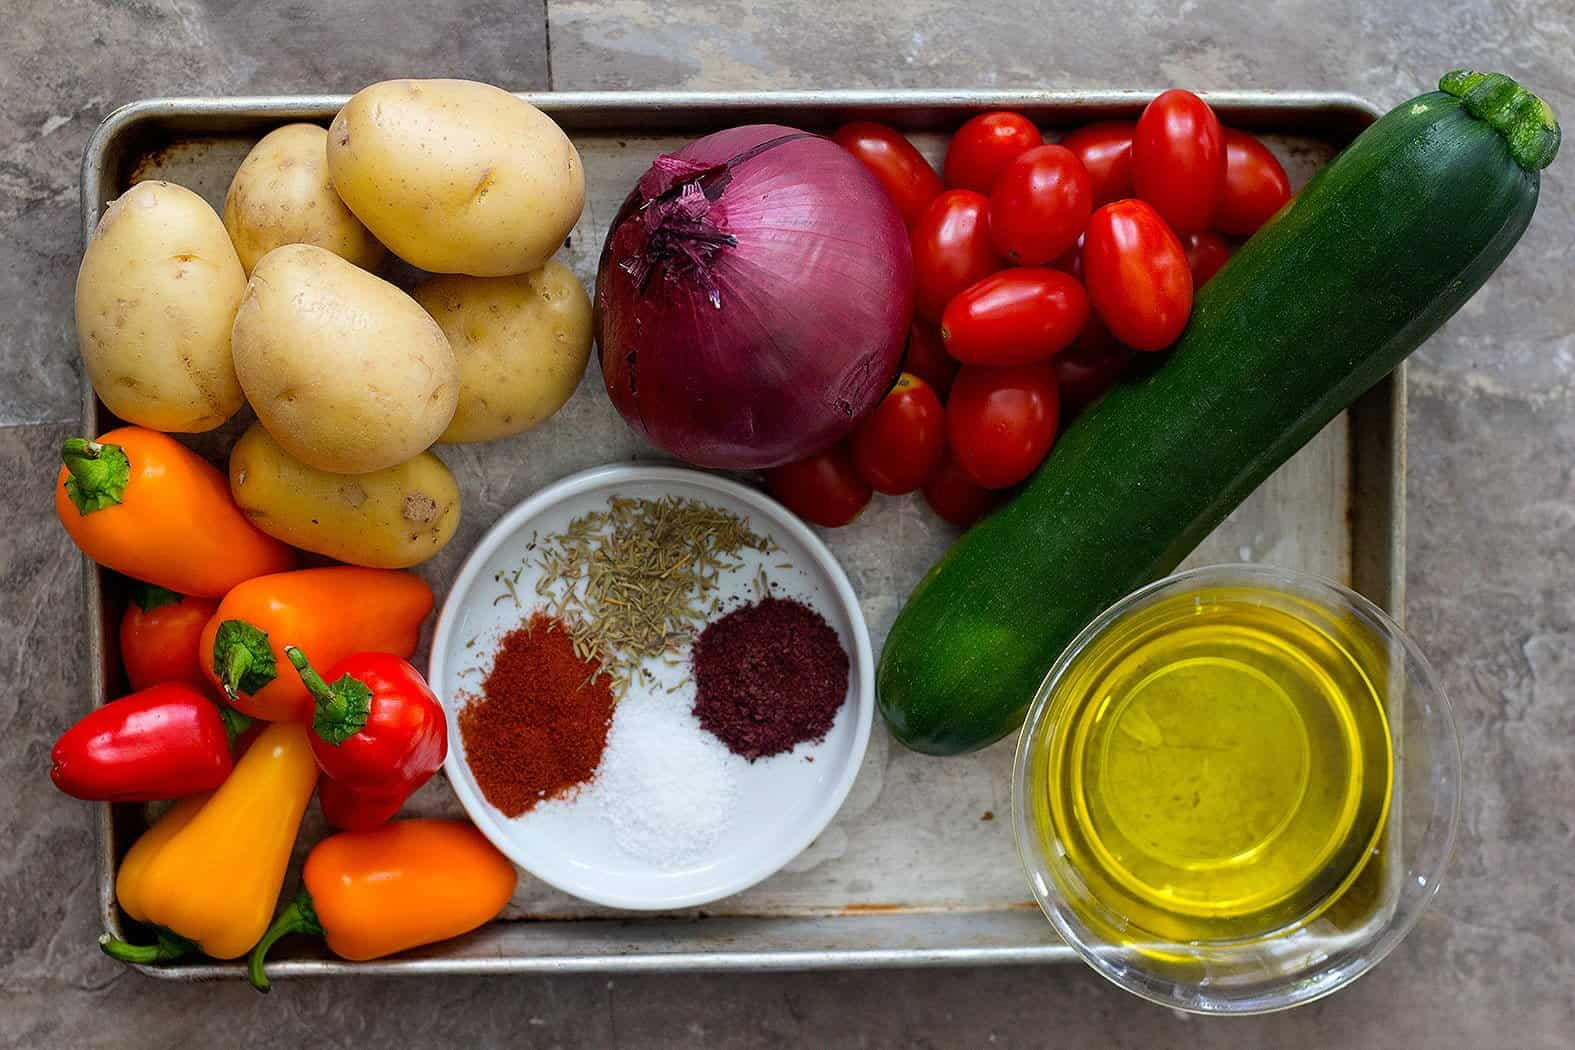 Use pepper, potatoes, onion, tomatoes, zucchini, olive oil and spices to make roasted vegetables in oven.